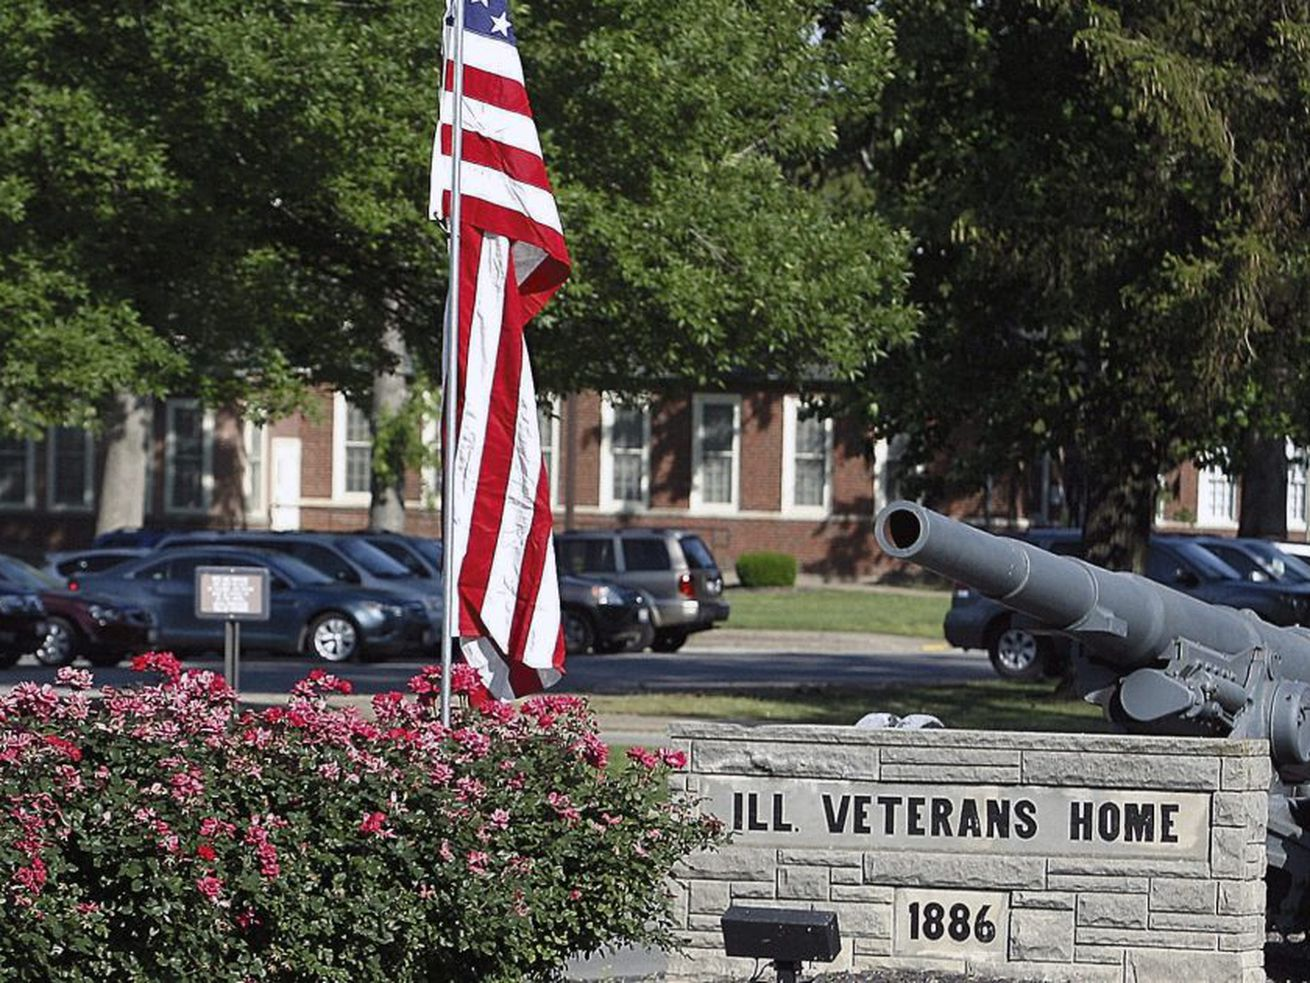 Vets home resident diagnosed with COVID-19, Legionnaires' disease 'responding well' to treatment 1